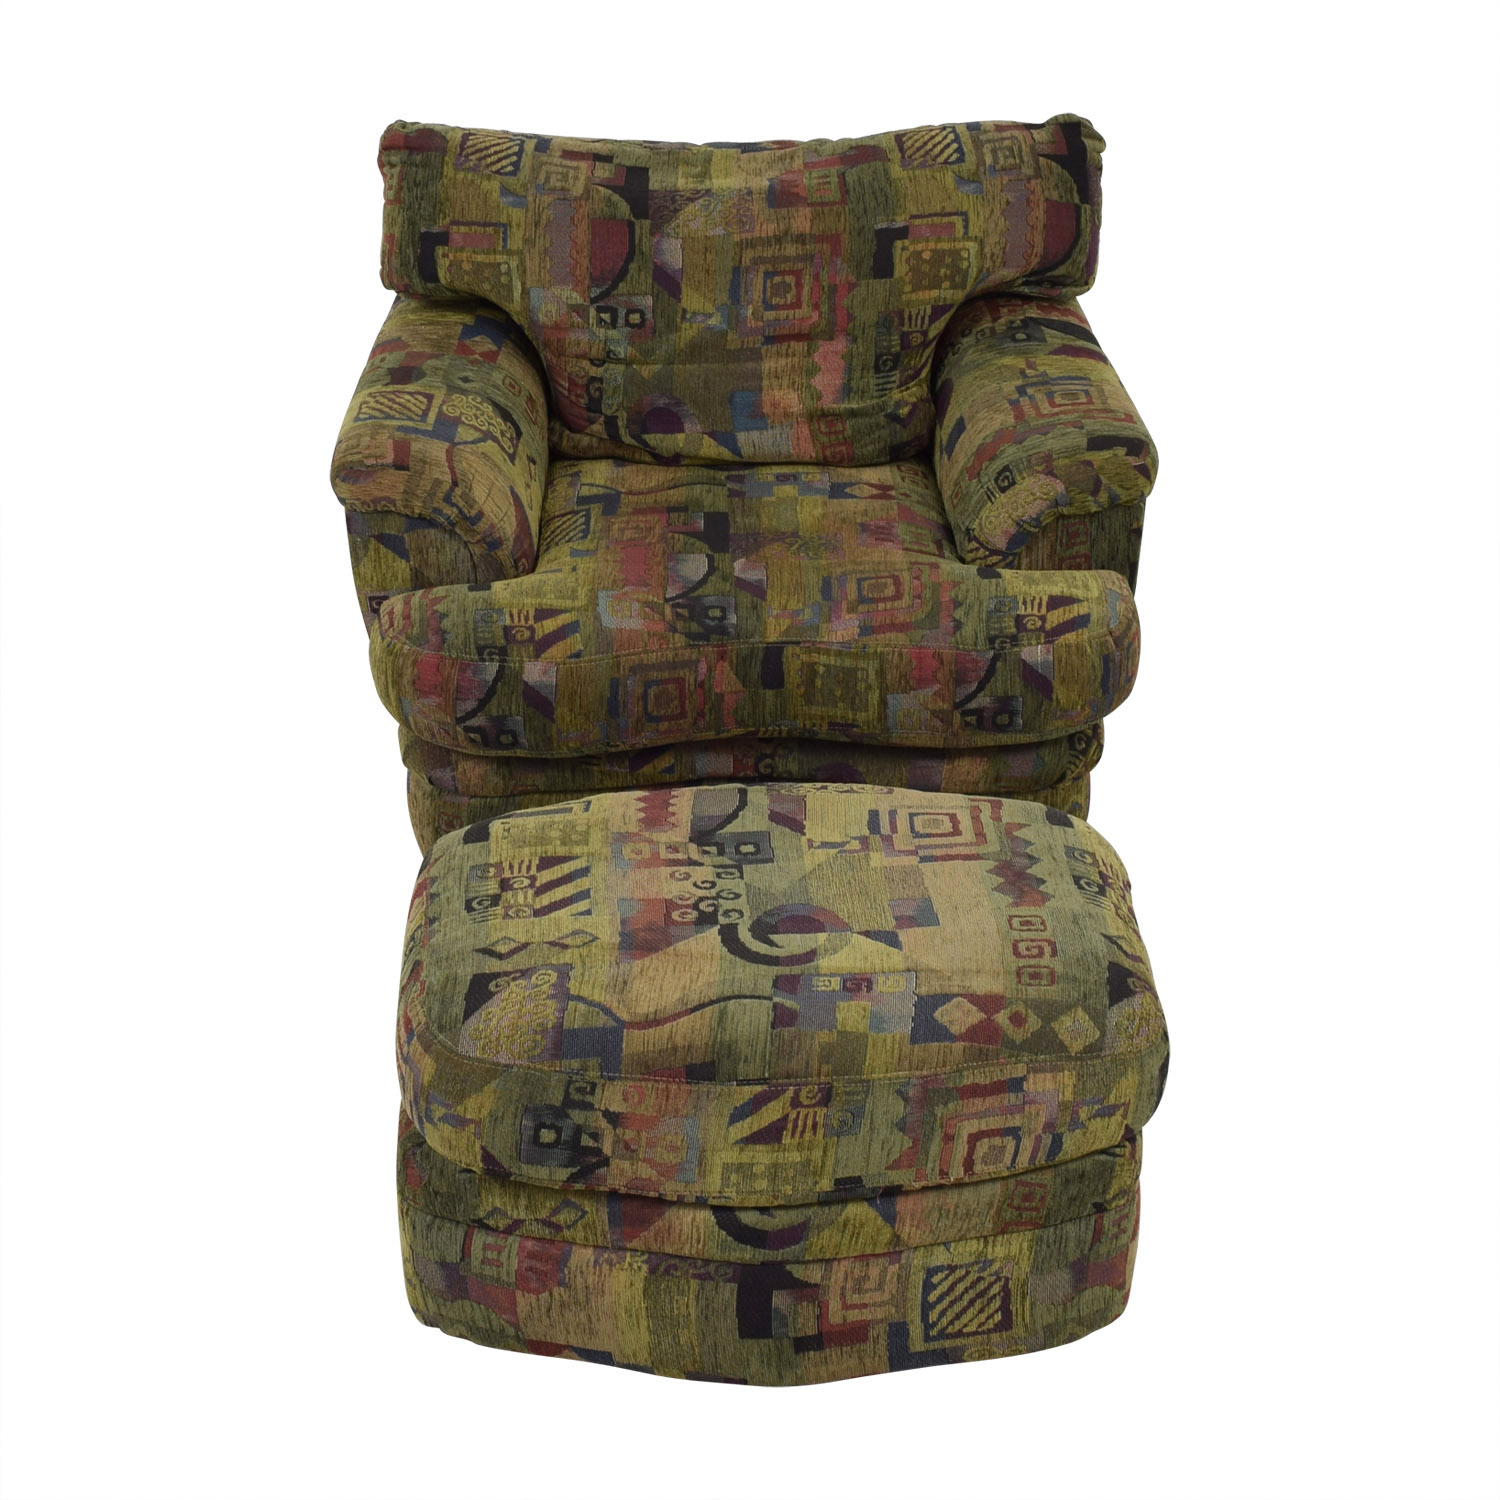 buy Raymour & Flanigan Raymour & Flanigan Multi-Colored Accent Chair with Ottoman online